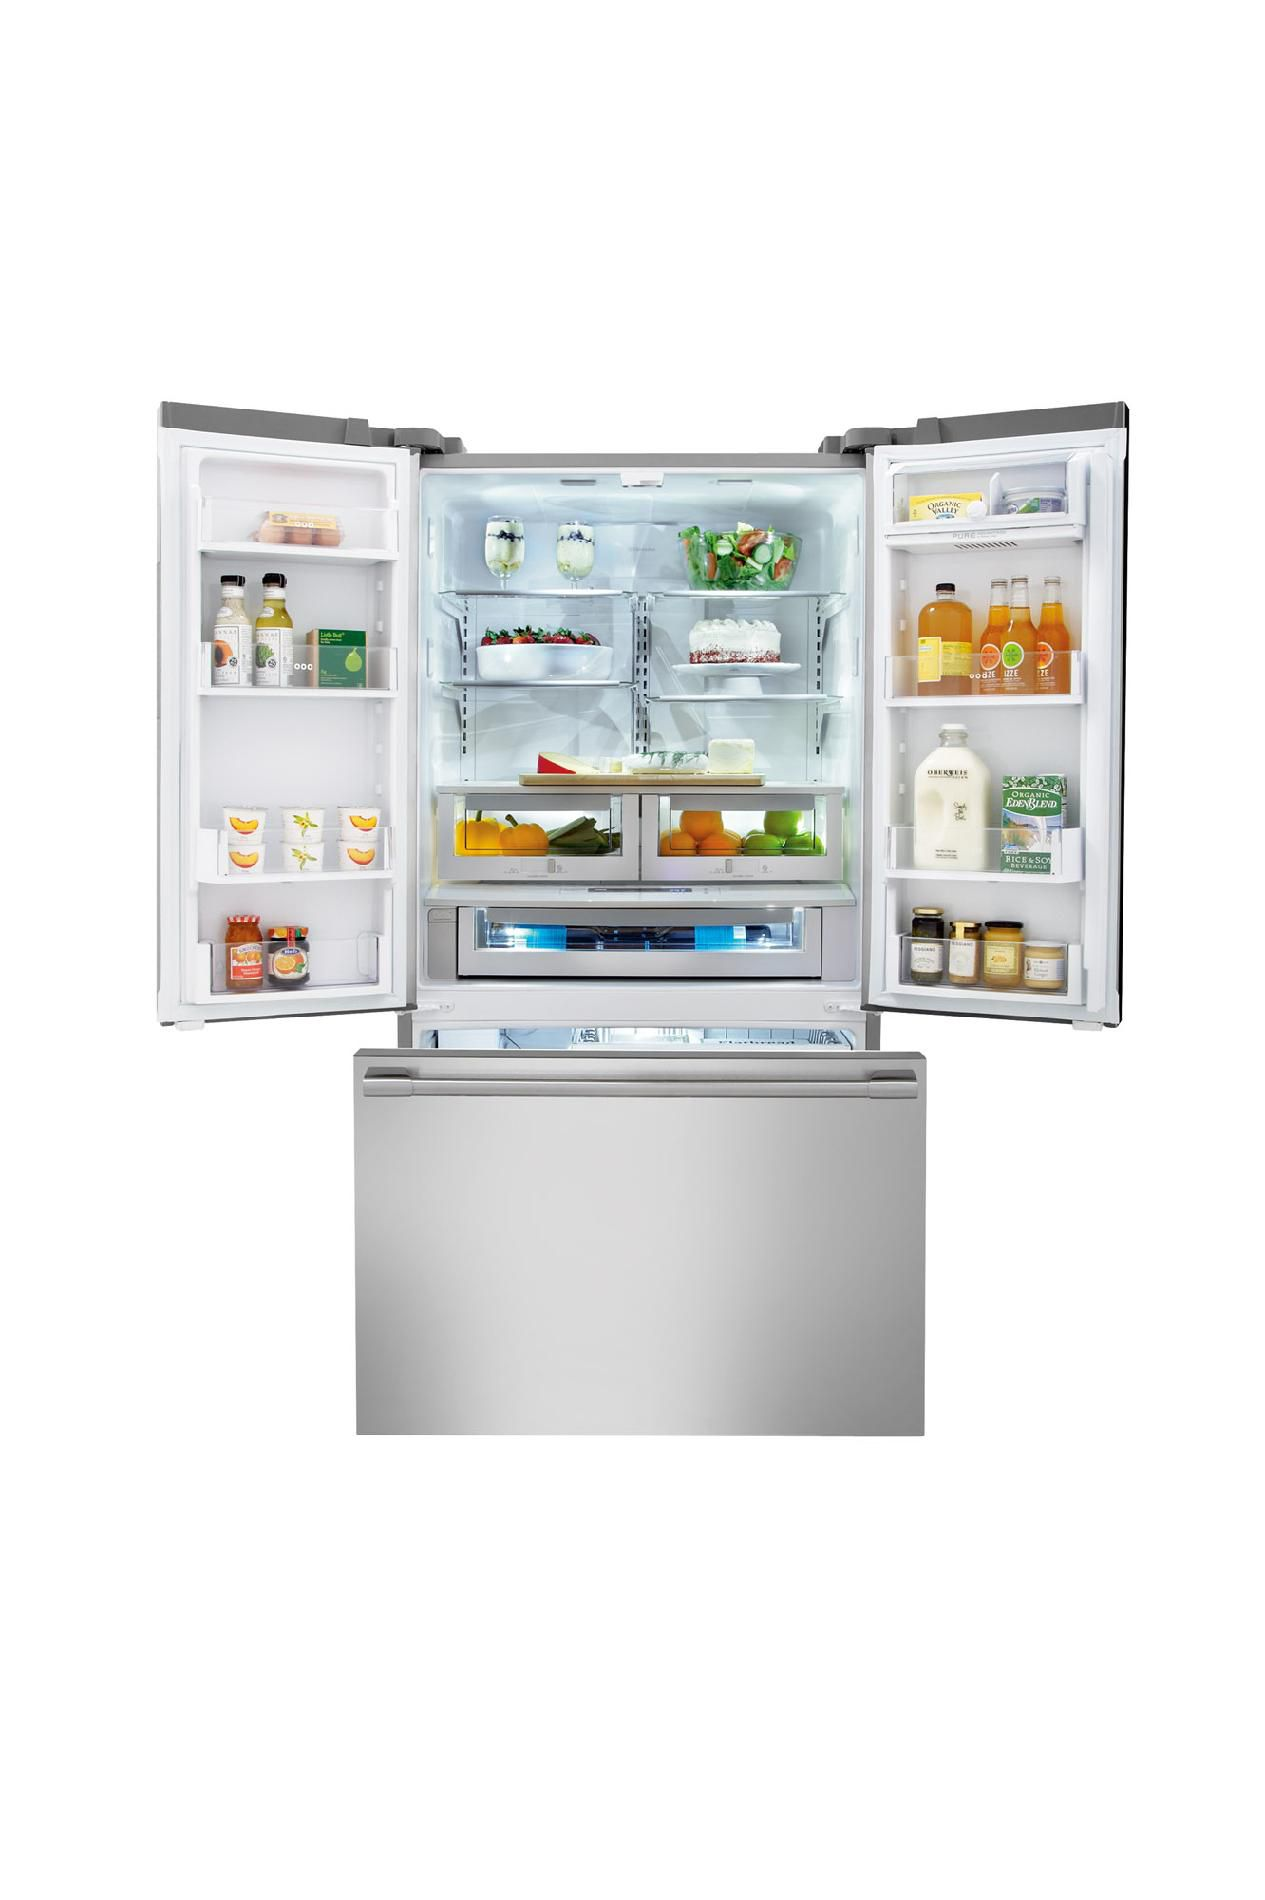 Electrolux ICON E23BC68JPS 22.6 cu. ft. Counter-depth French Door Refrigerator  - Stainless Steel